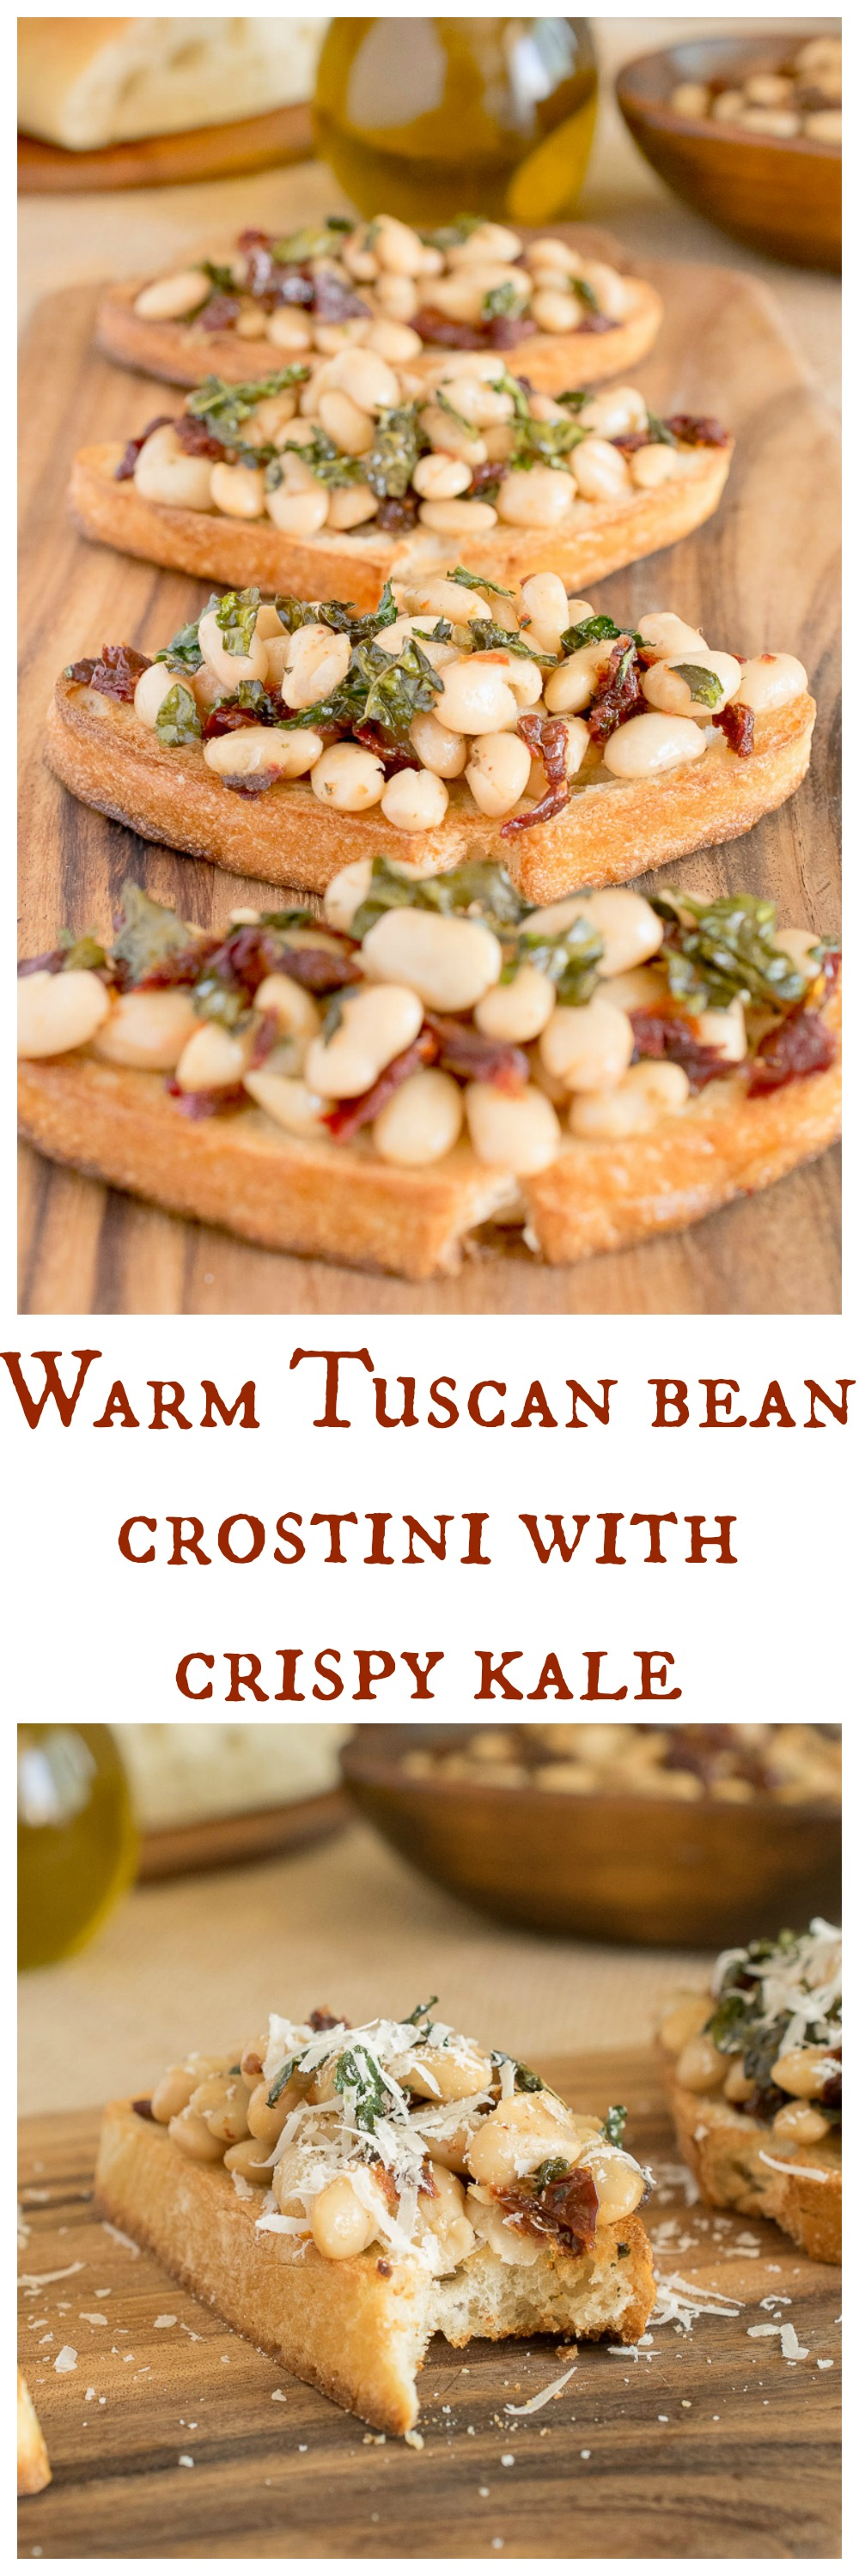 Warm tuscan bean crostini with crispy kale-longpin